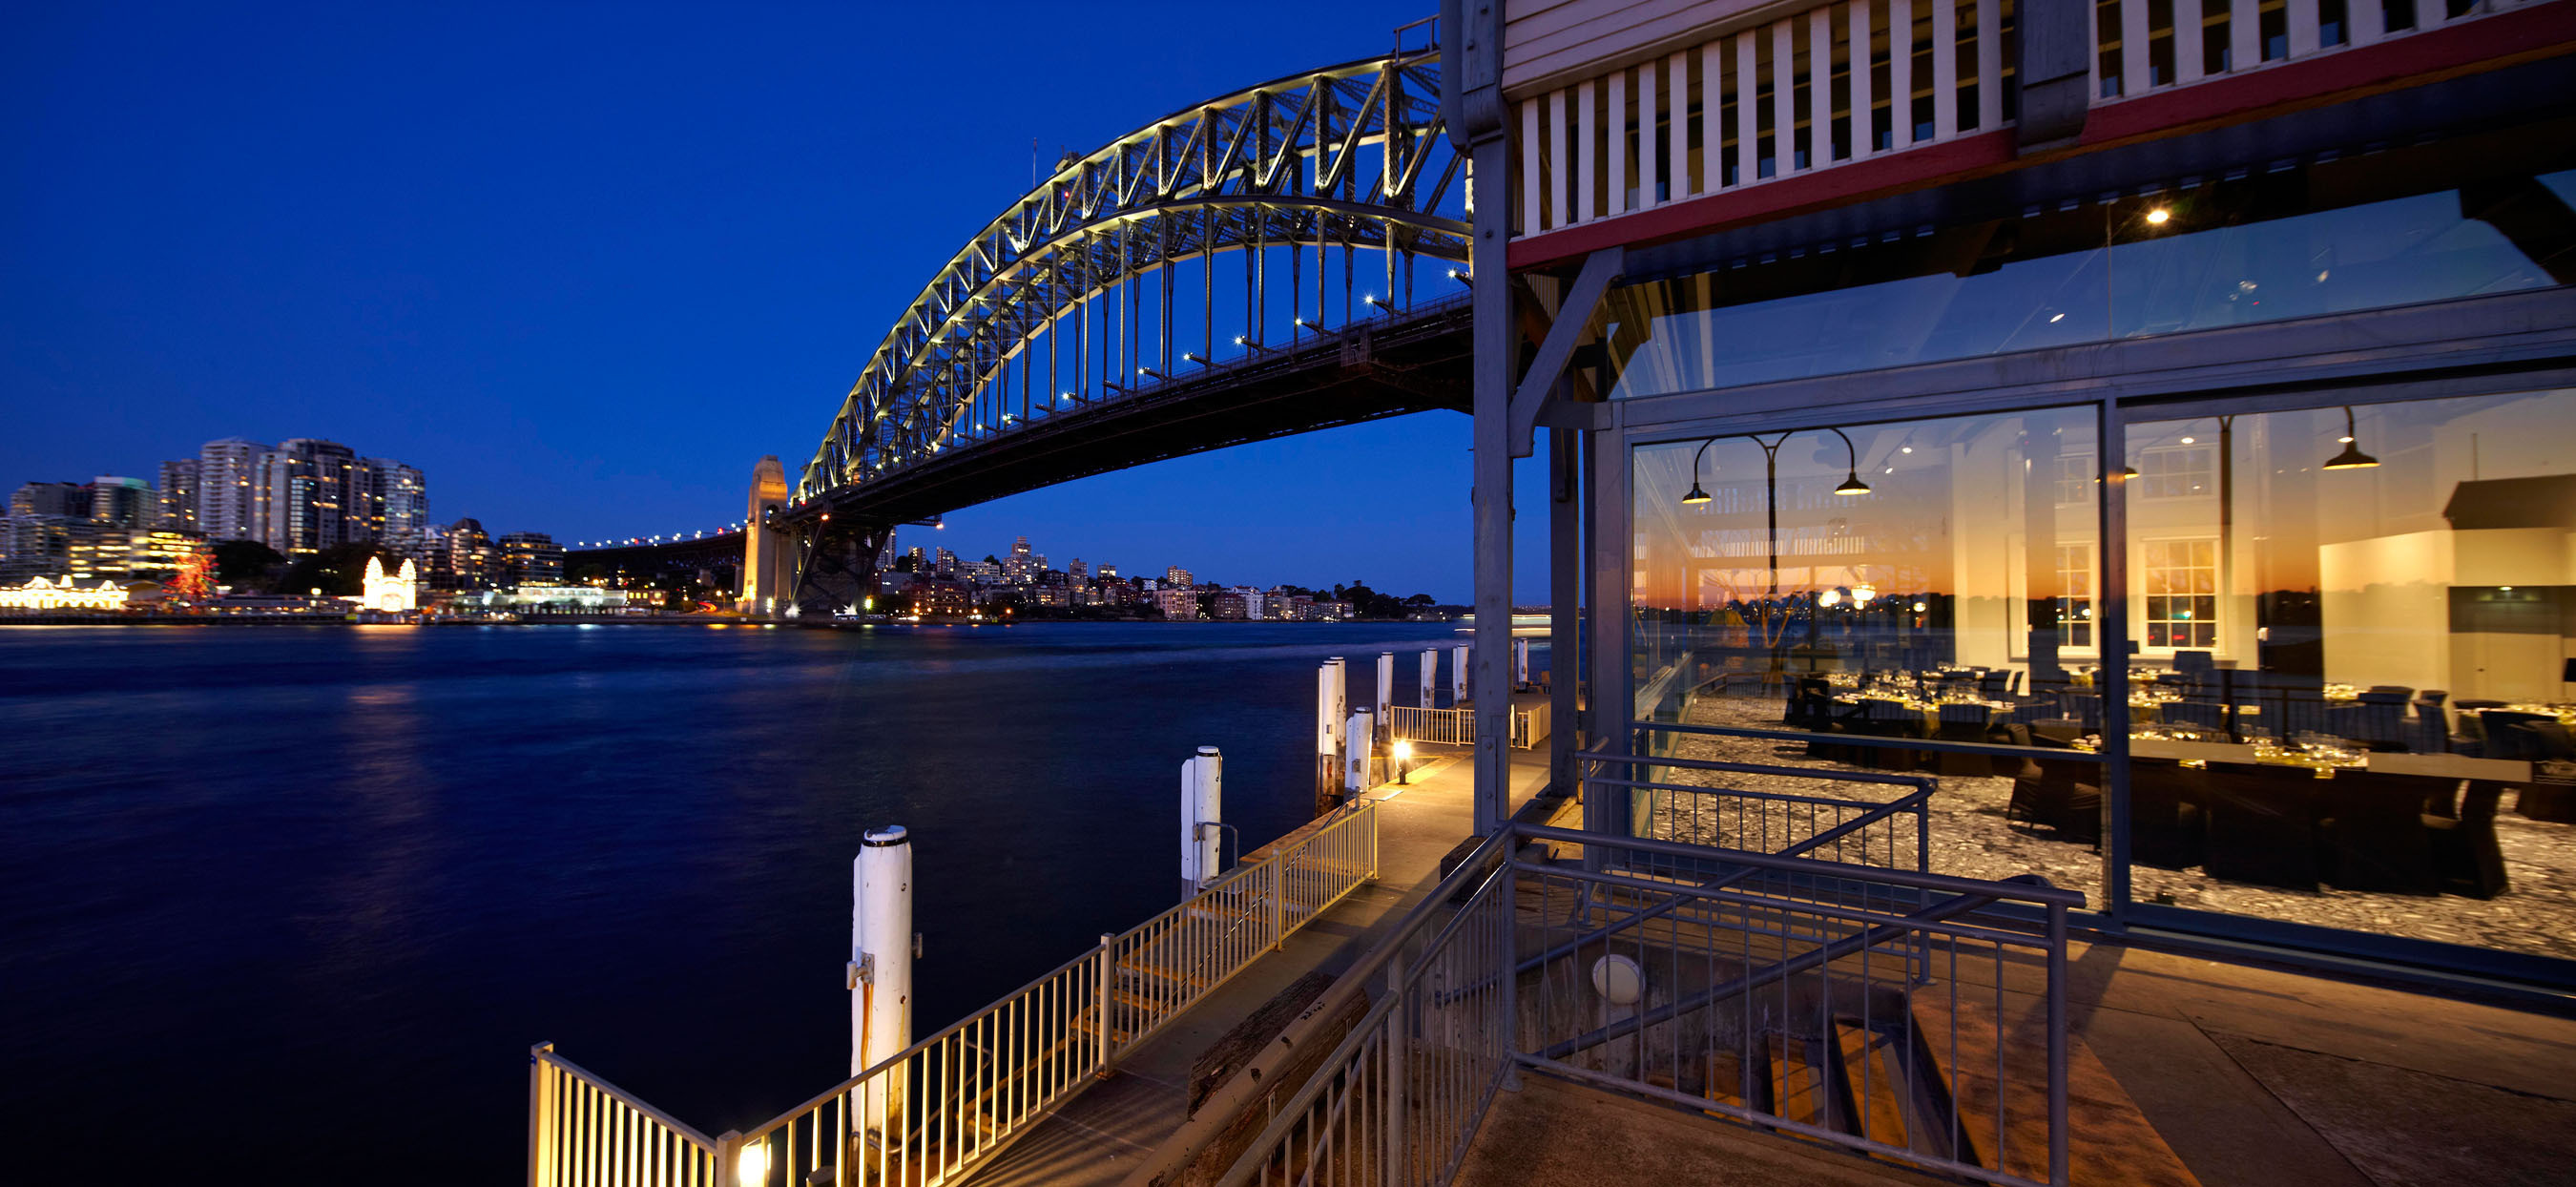 From Sydney to San Diego - Autograph Collection set to debut in three new world class destinations, including Pier One Sydney Harbour in Sydney, Australia (shown here), the ocean front Pier South Resort in San Diego, California, and the Hotel Chicago (formerly the Hotel Sax) in Chicago, Illinois.  (PRNewsFoto/Marriott International)